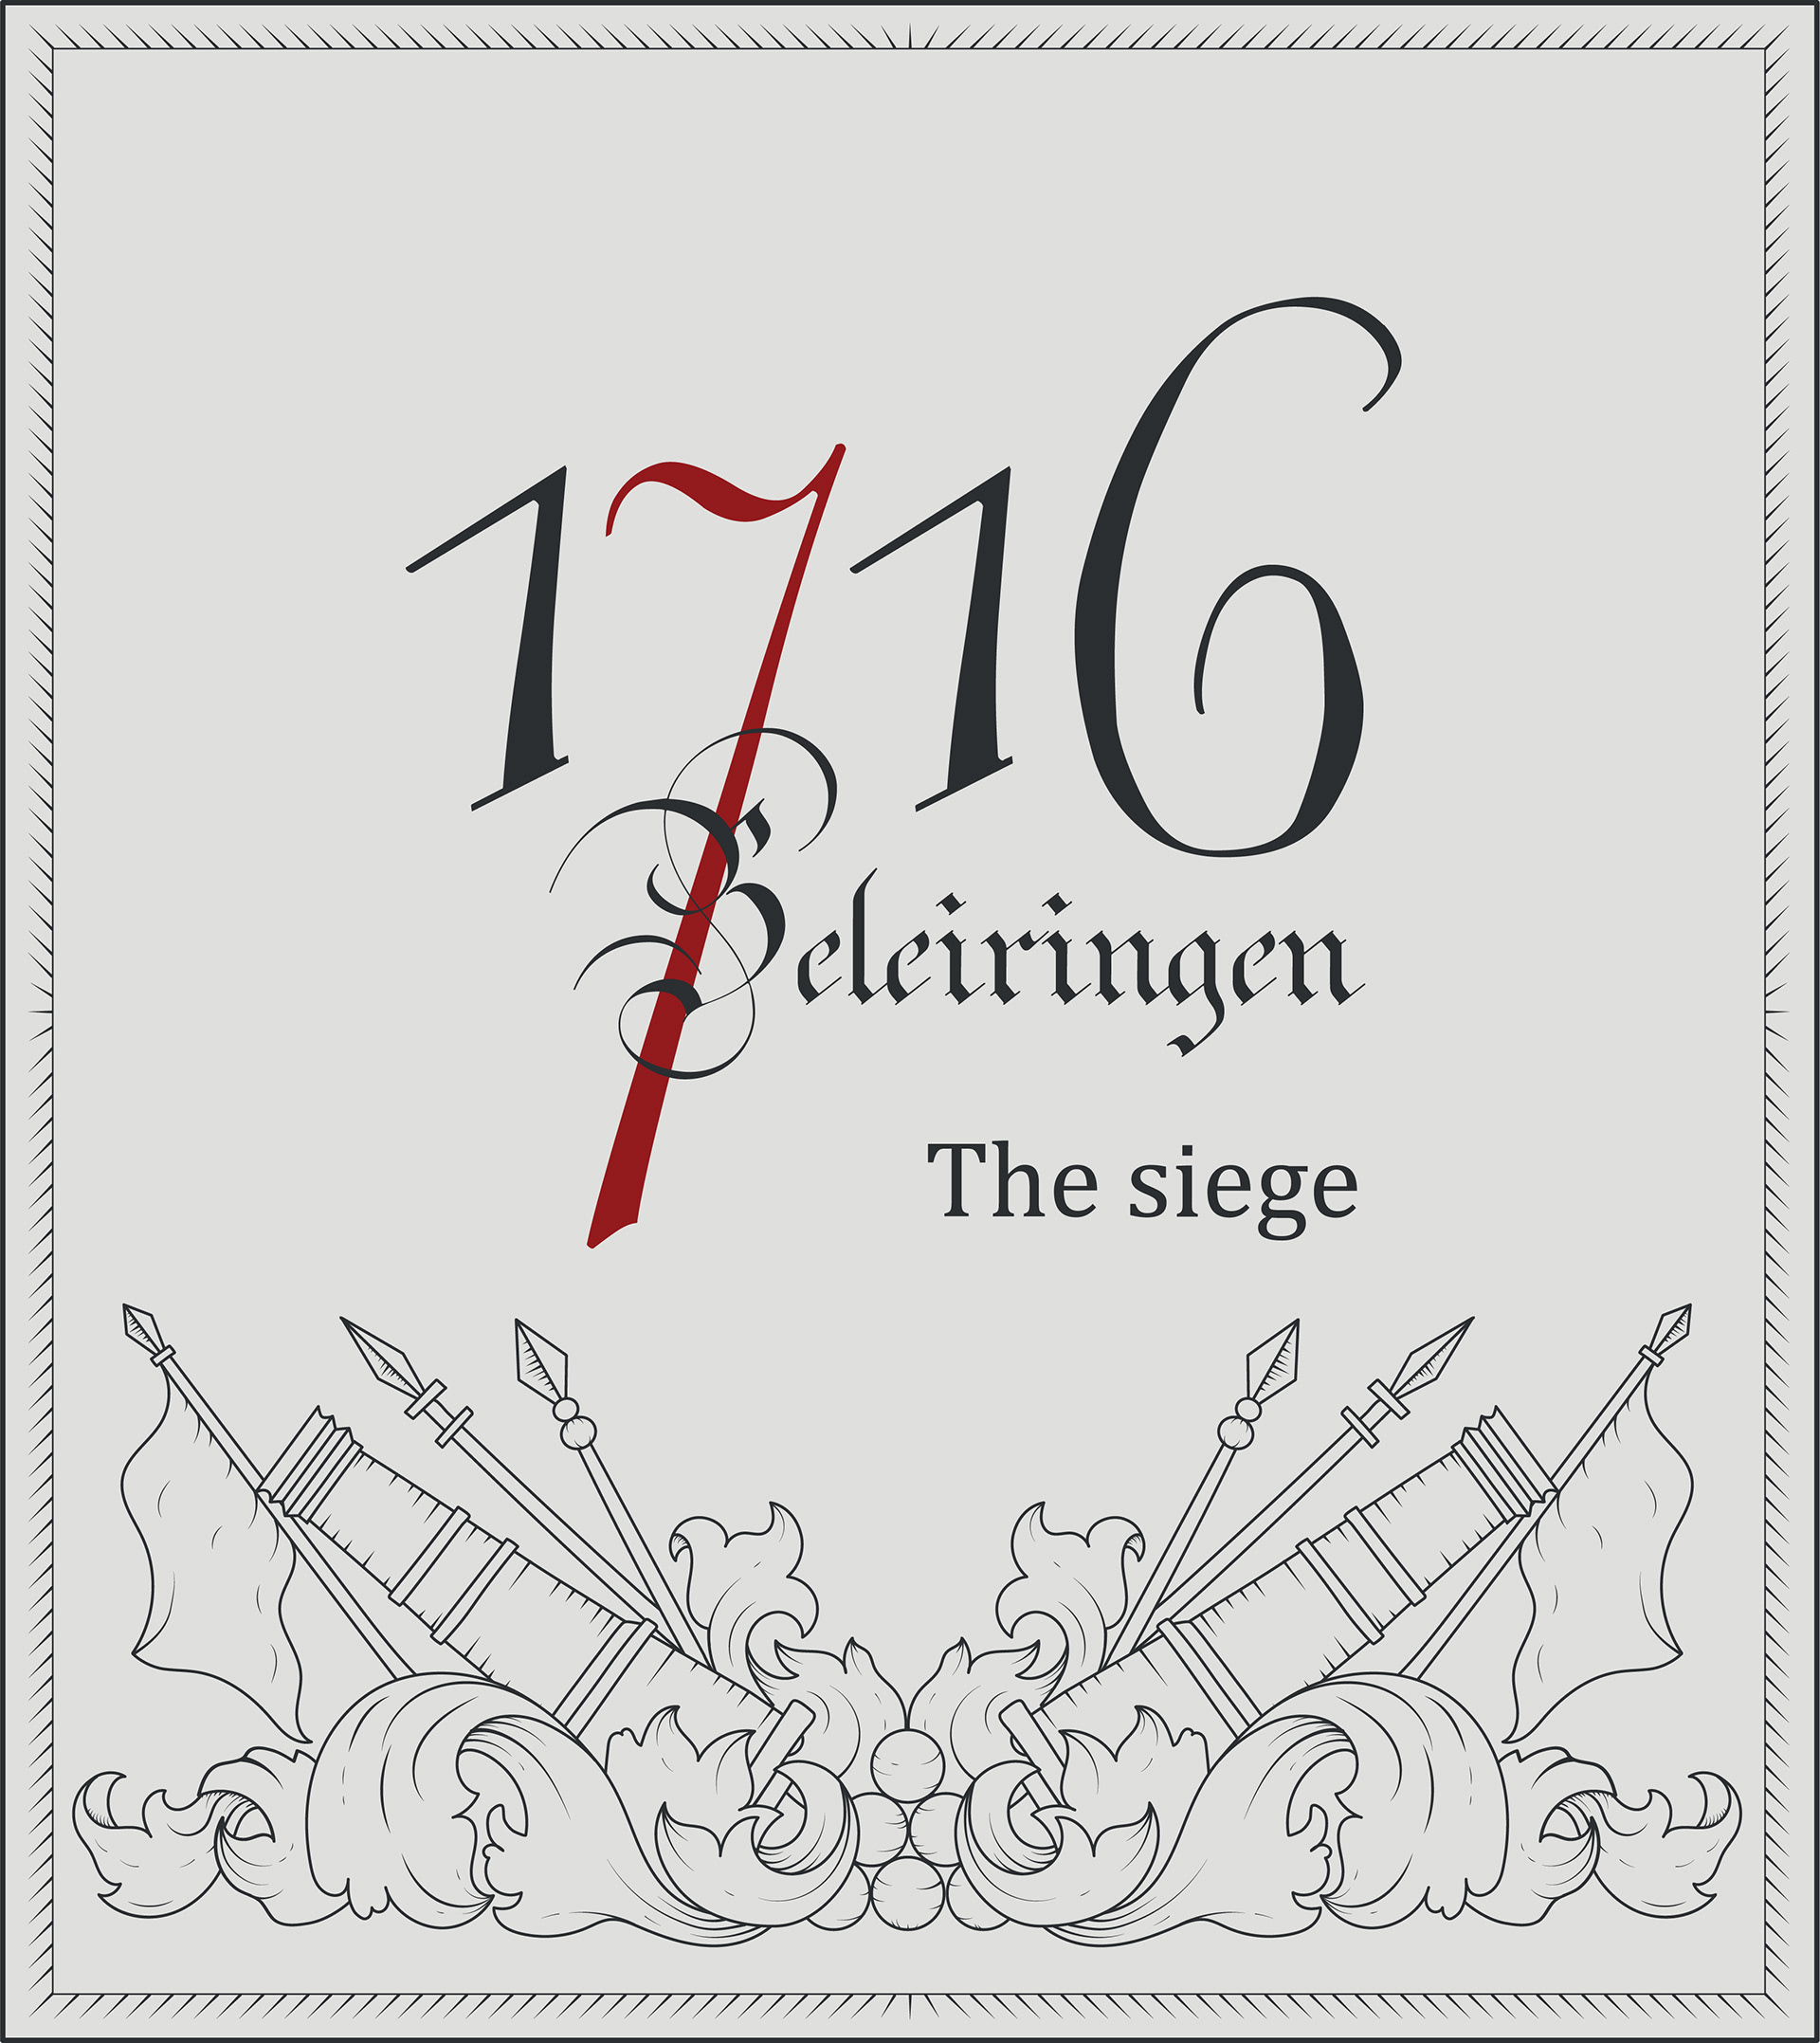 ... in Oslo about the siege in Norway in 1716. I helped with their  exhibition logo and designed the illustration and the over all layout for  the exhibition.